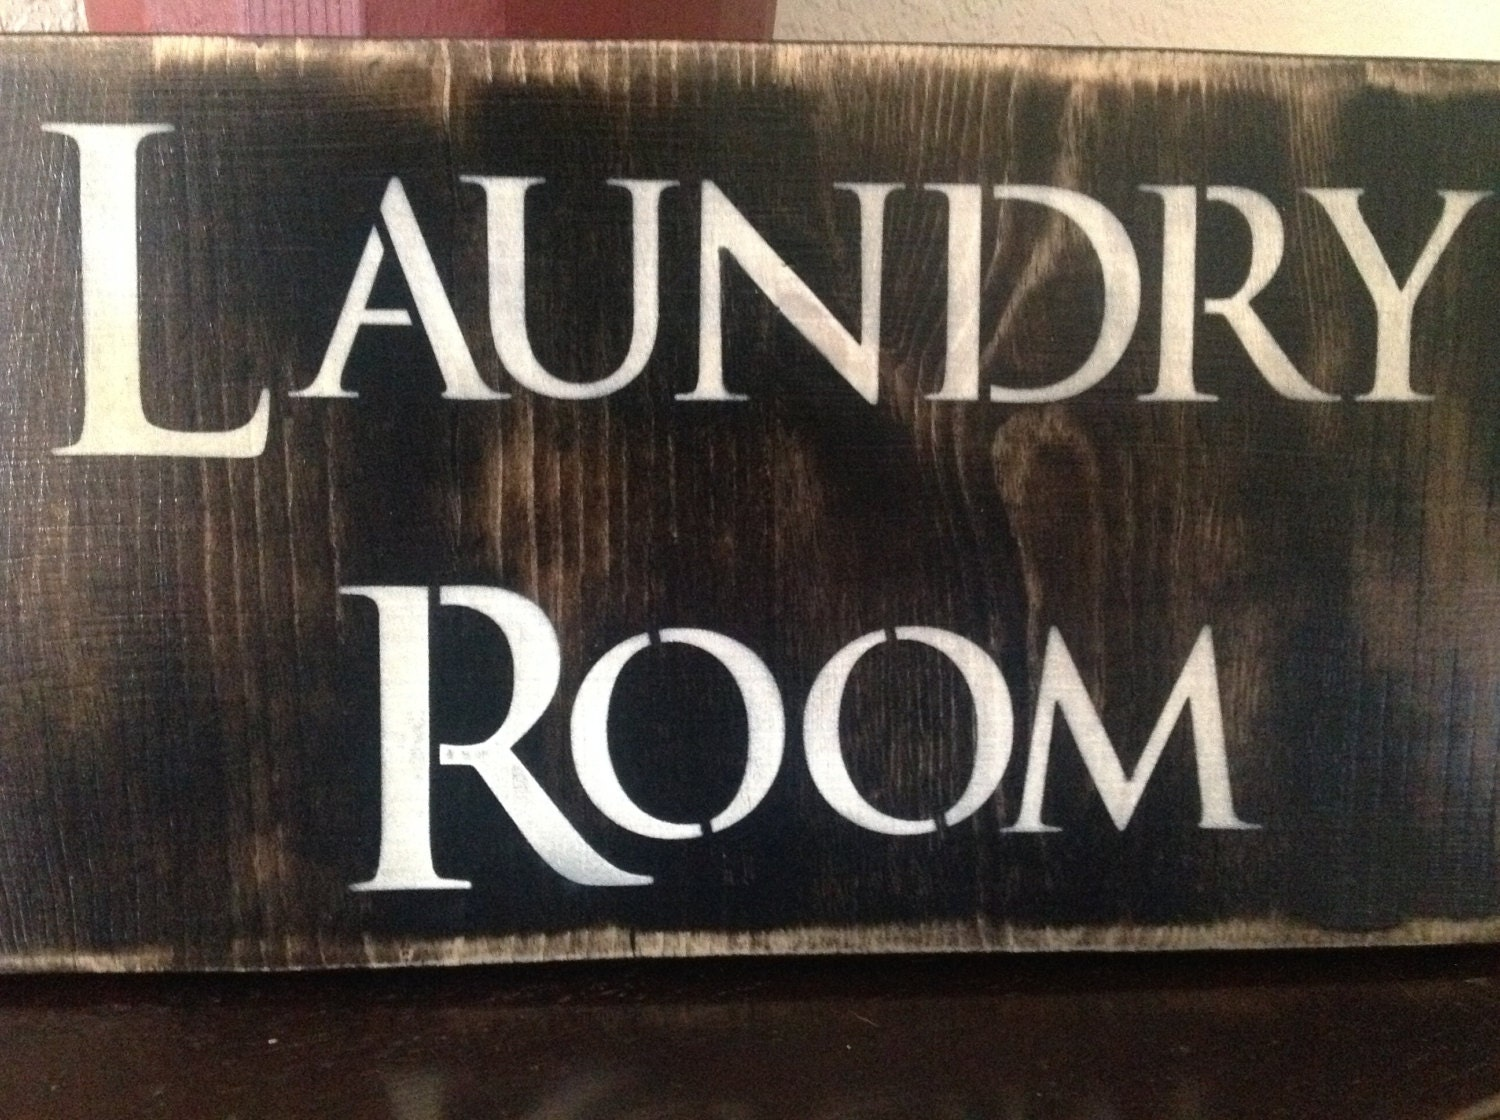 laundry room wood vintage sign wash fold wall decor